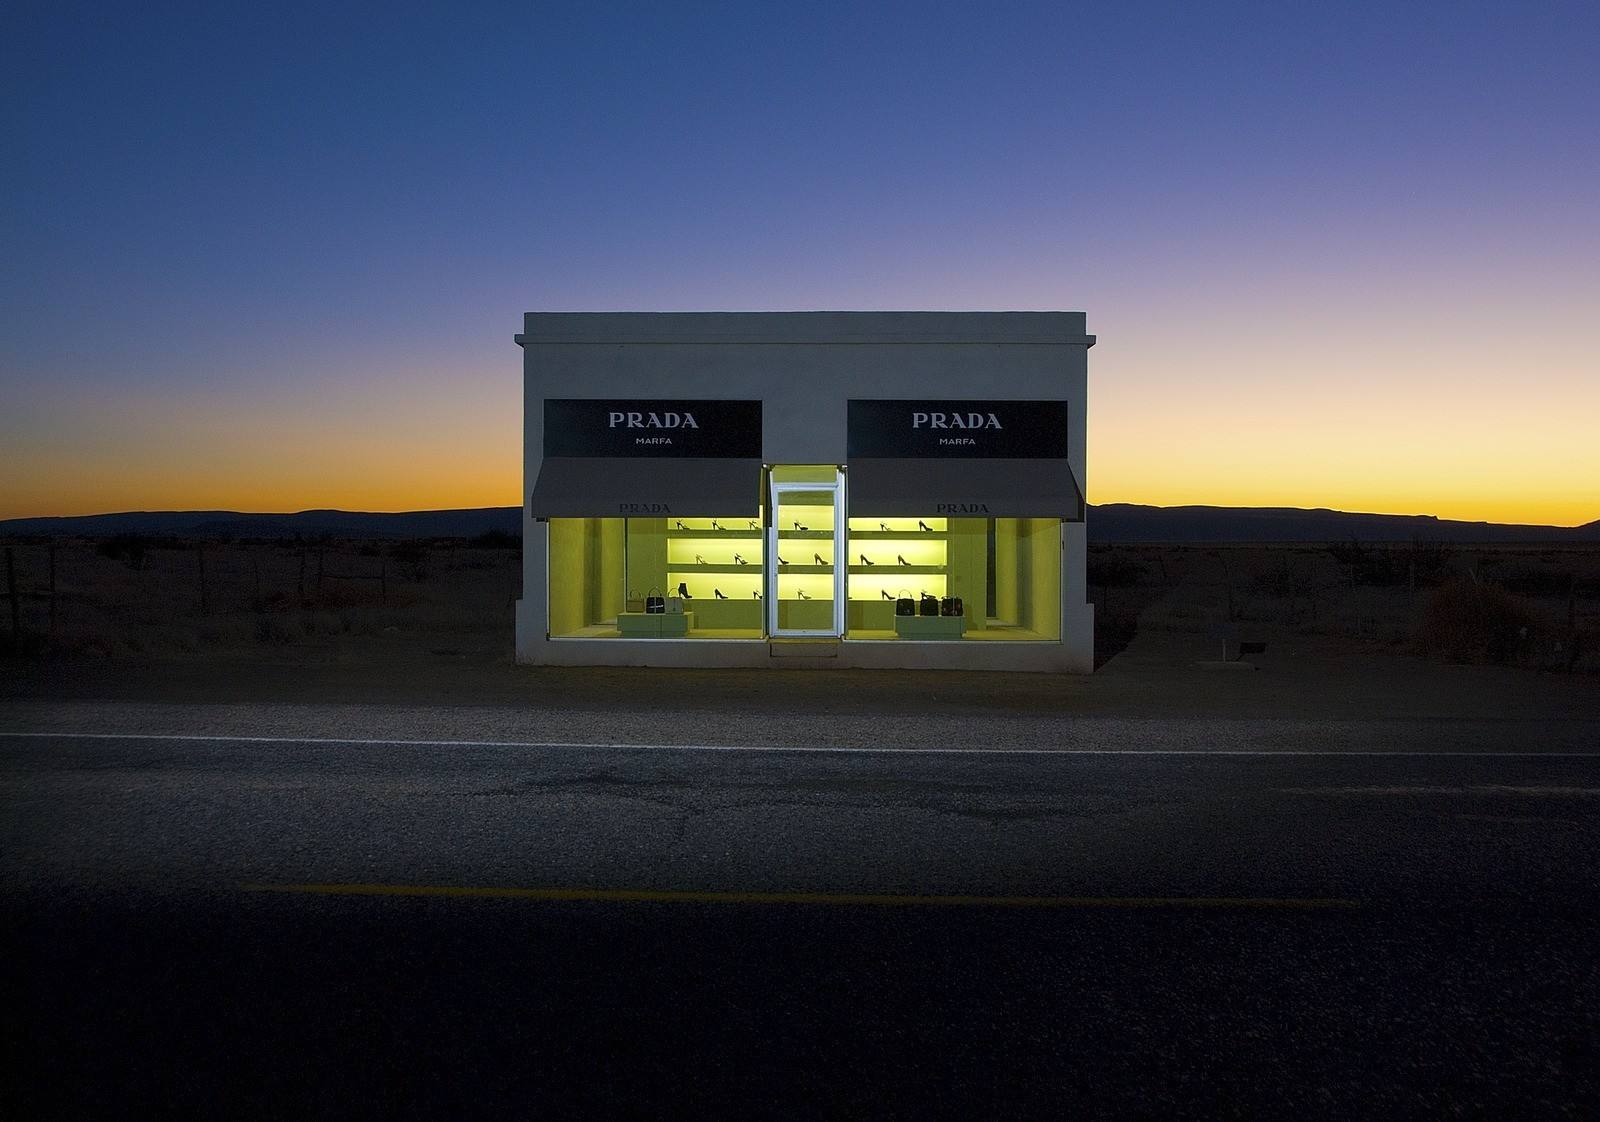 fashionspam prada marfa sign by elmgreen dragset. Black Bedroom Furniture Sets. Home Design Ideas